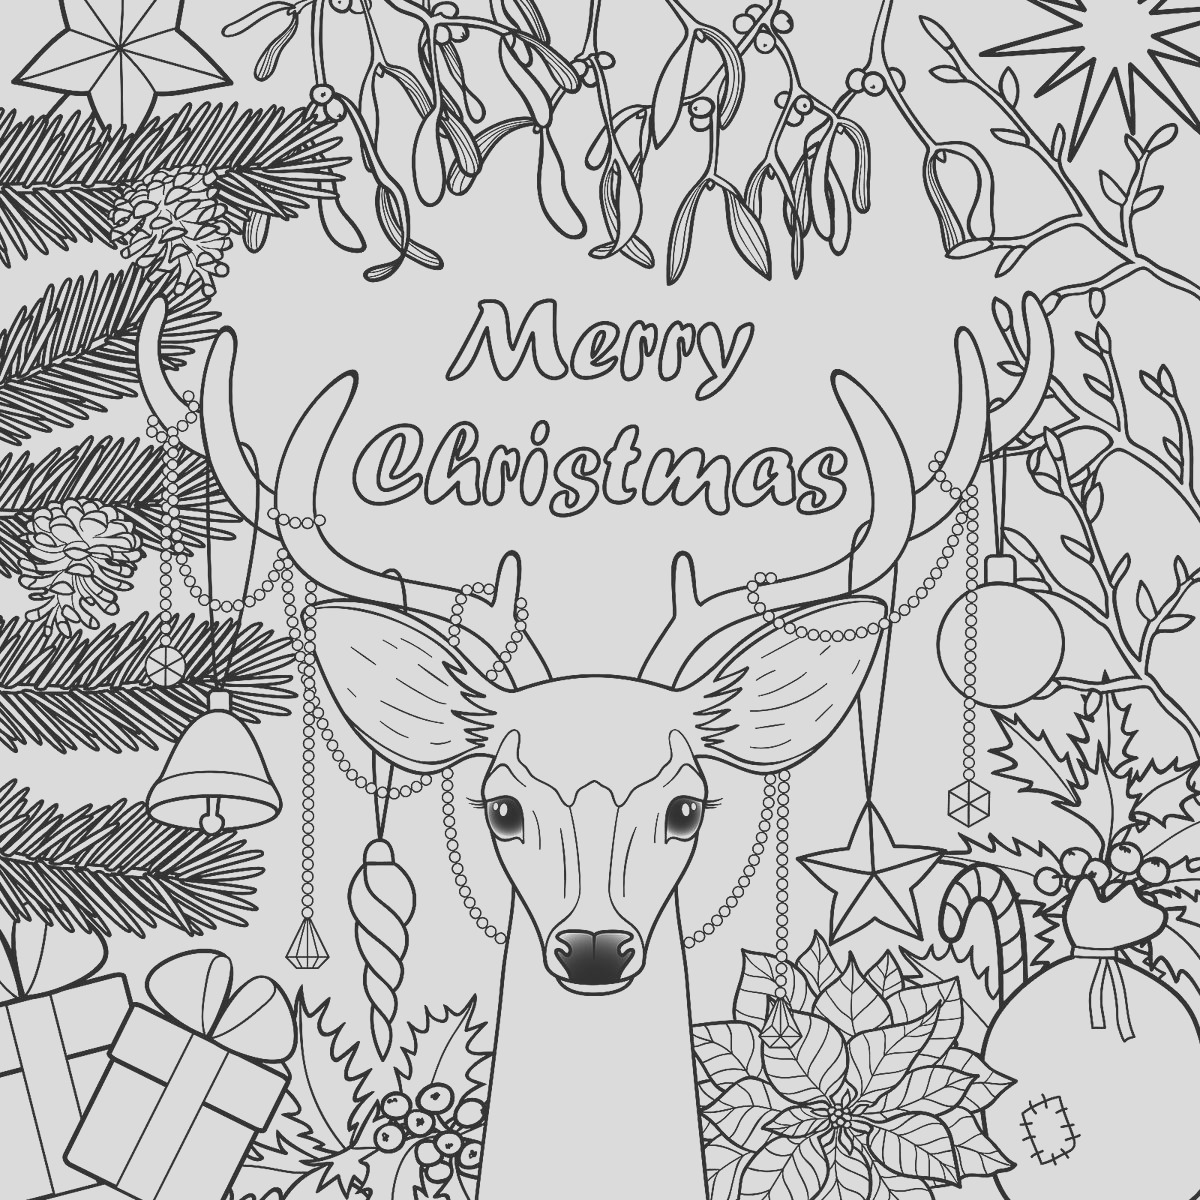 Christmas Coloring Pages 16 Printable Coloring Pages for the Holidays